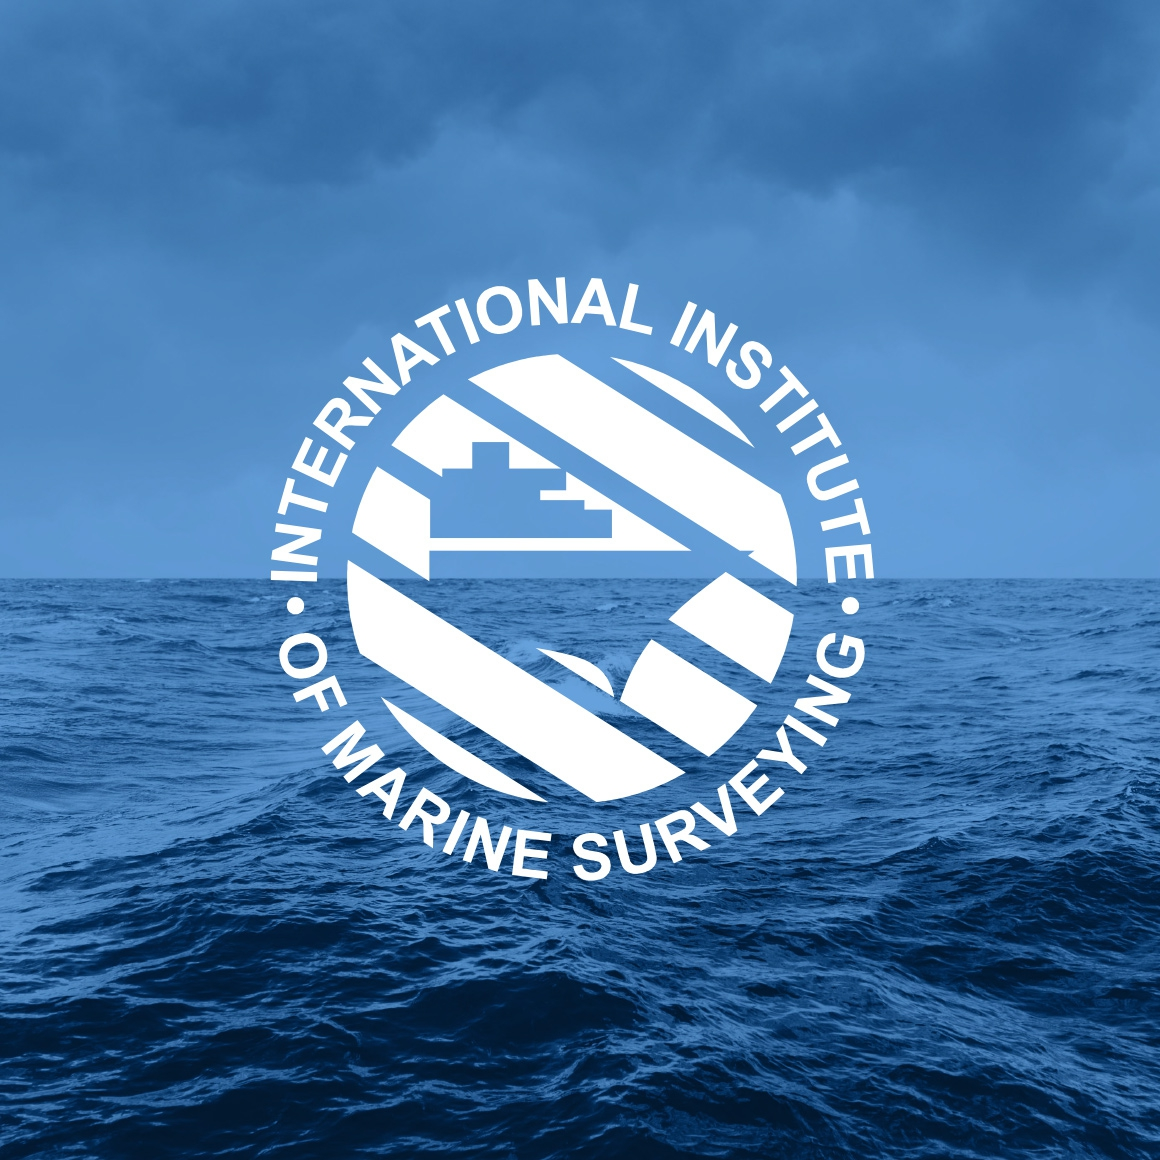 International Institute Of Marine Surveying